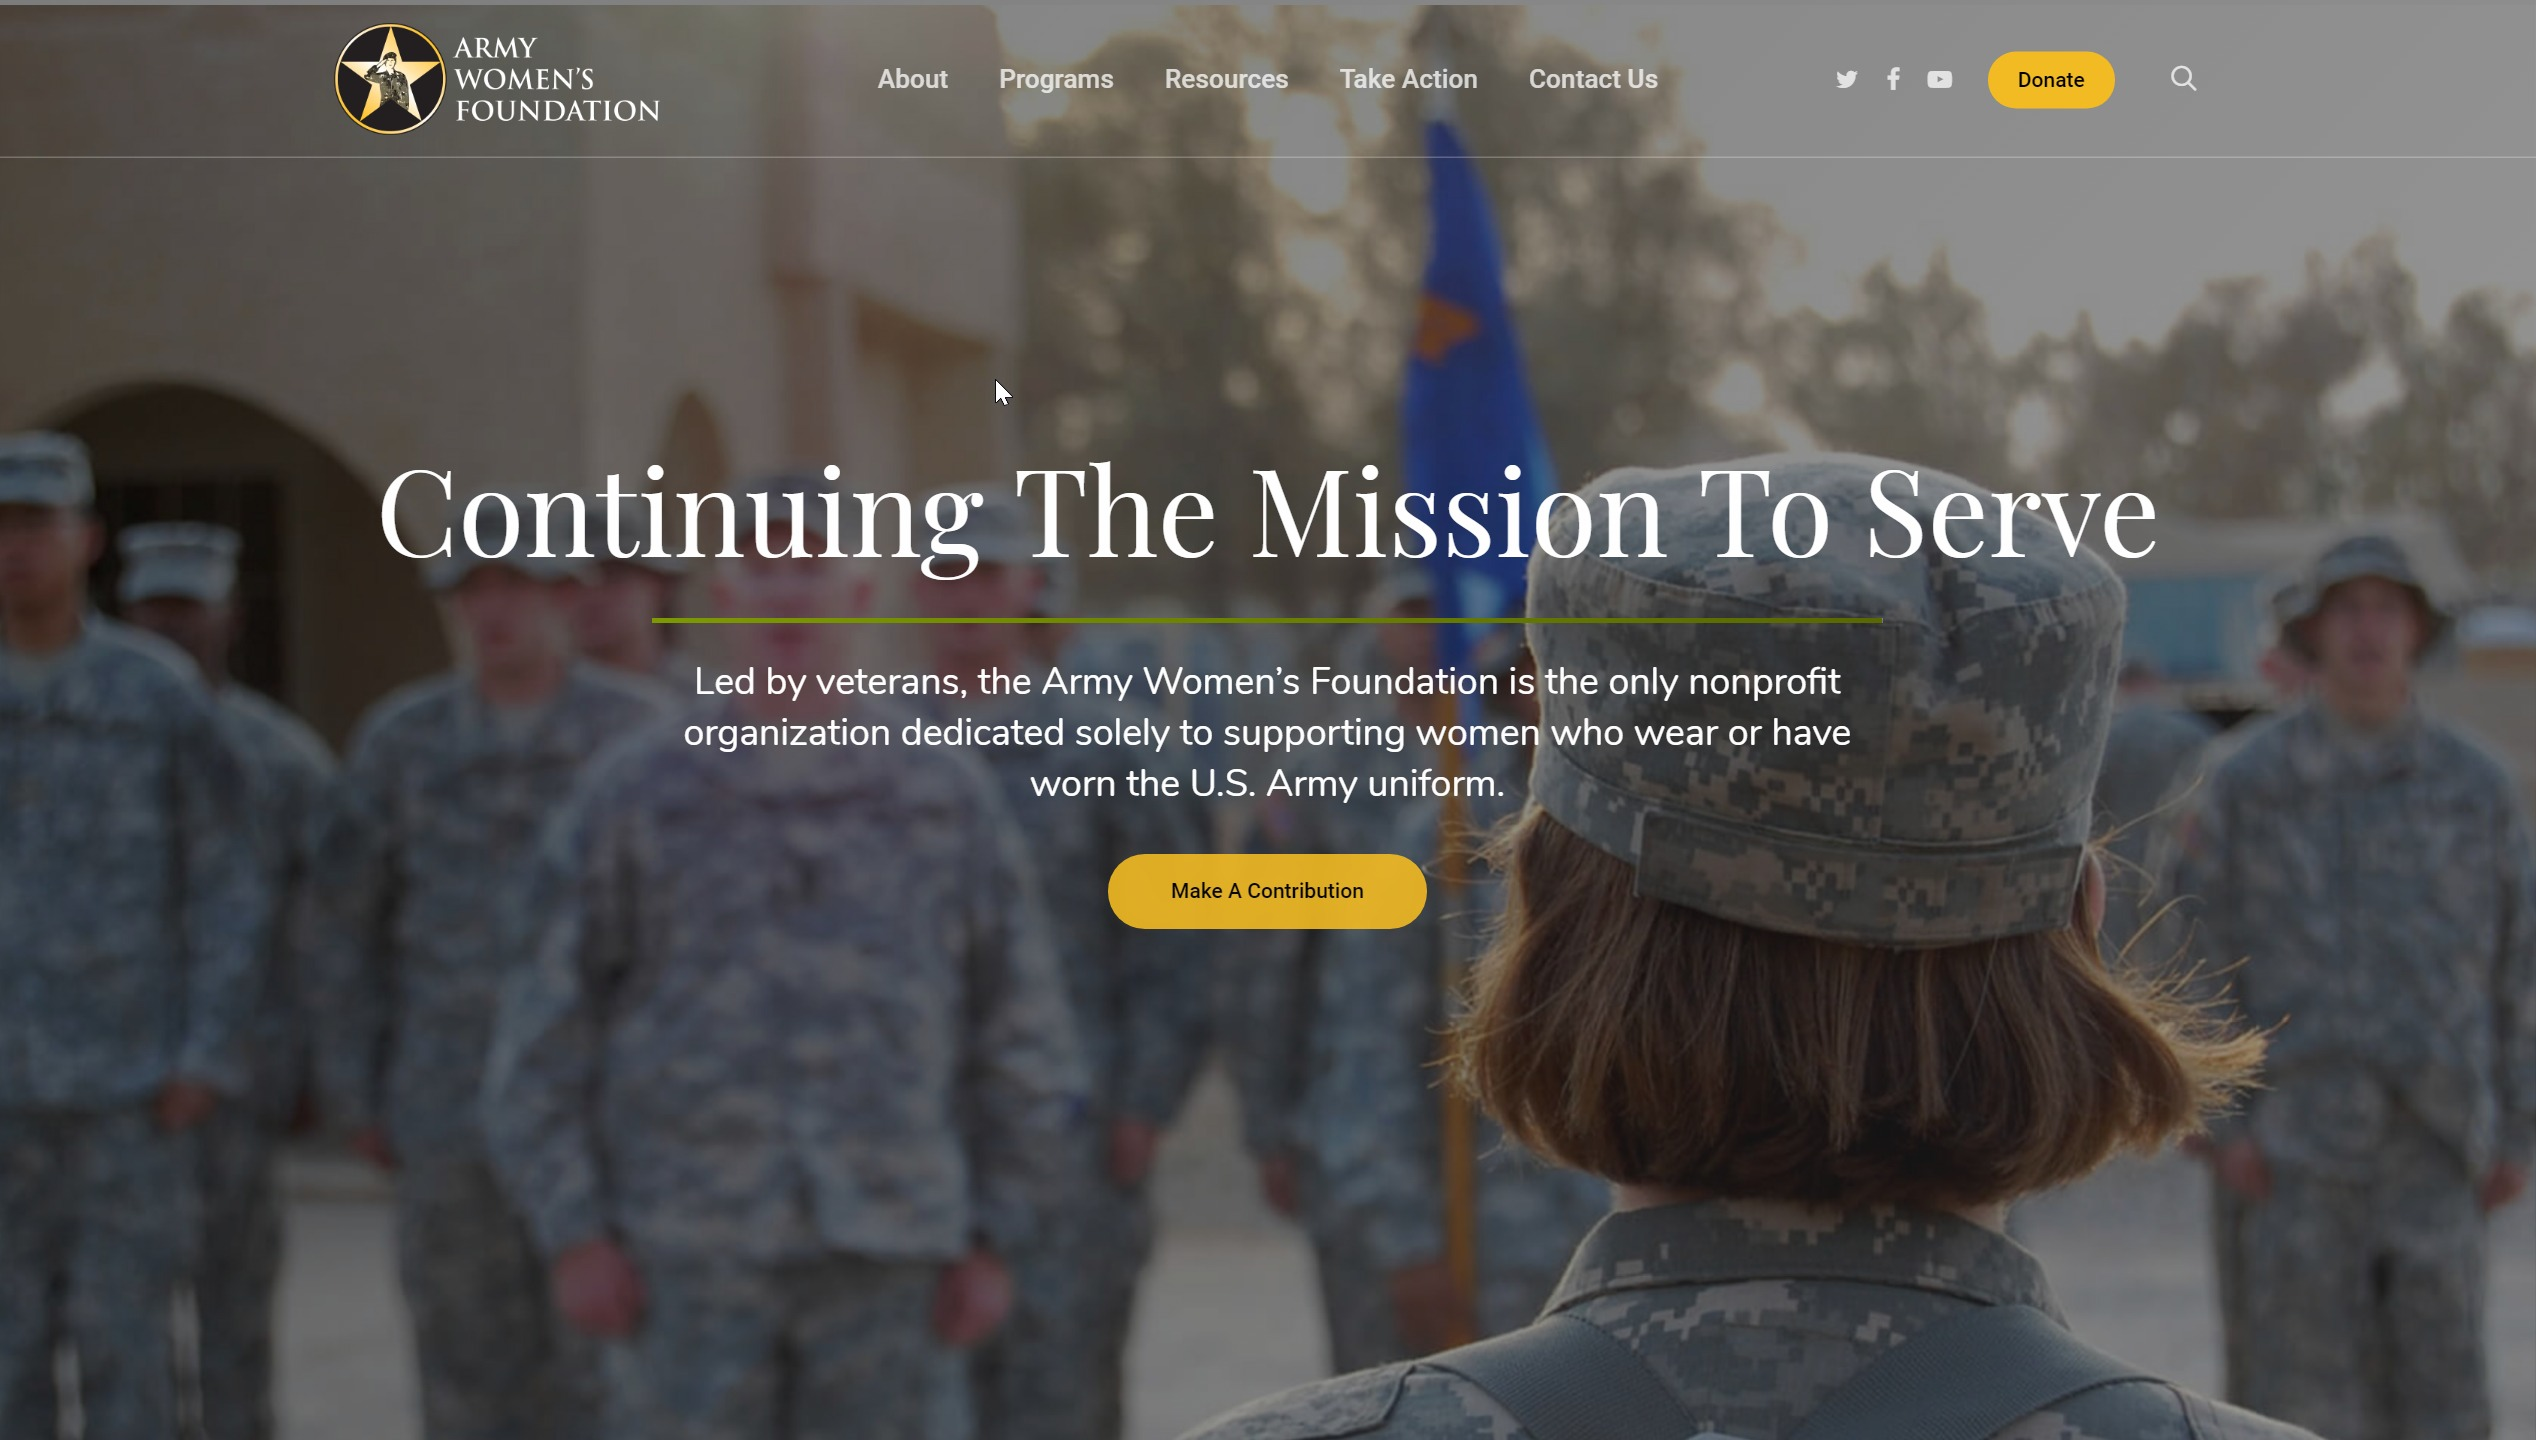 2019-01-14 13_34_26-Army Women's Foundation